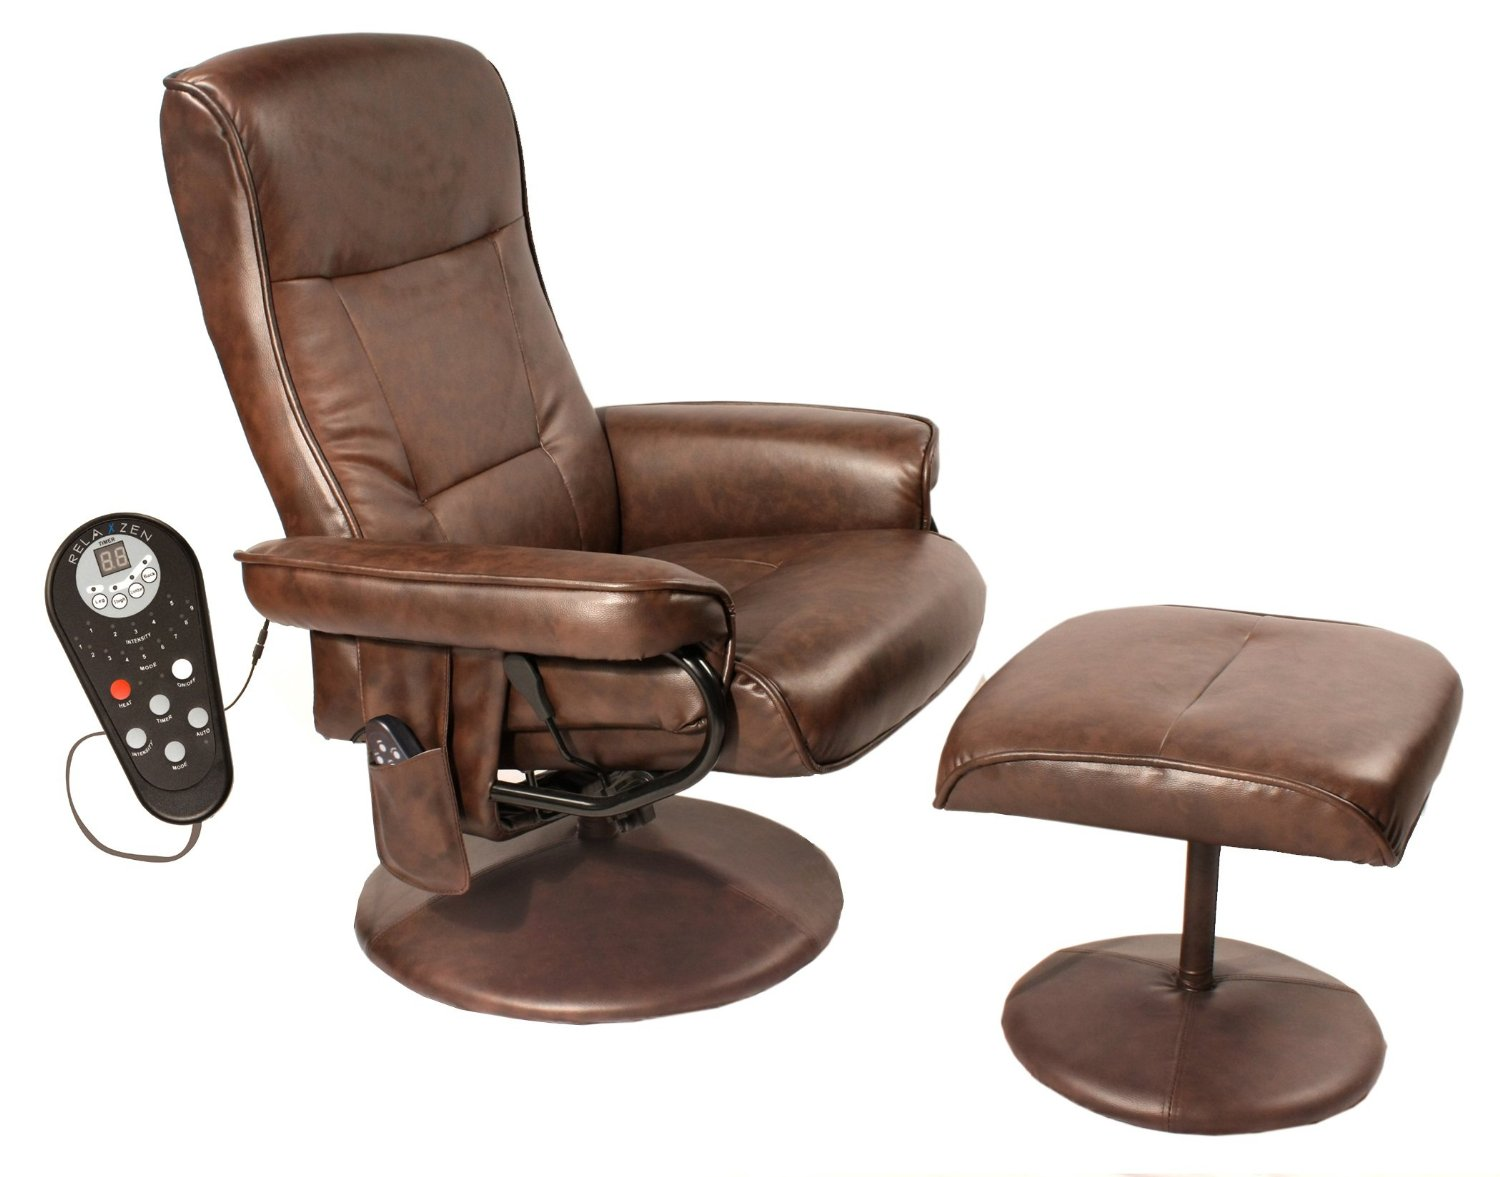 Message Chair Relaxzen Lounge Chair 60 425111 Review Massage Chair Hq